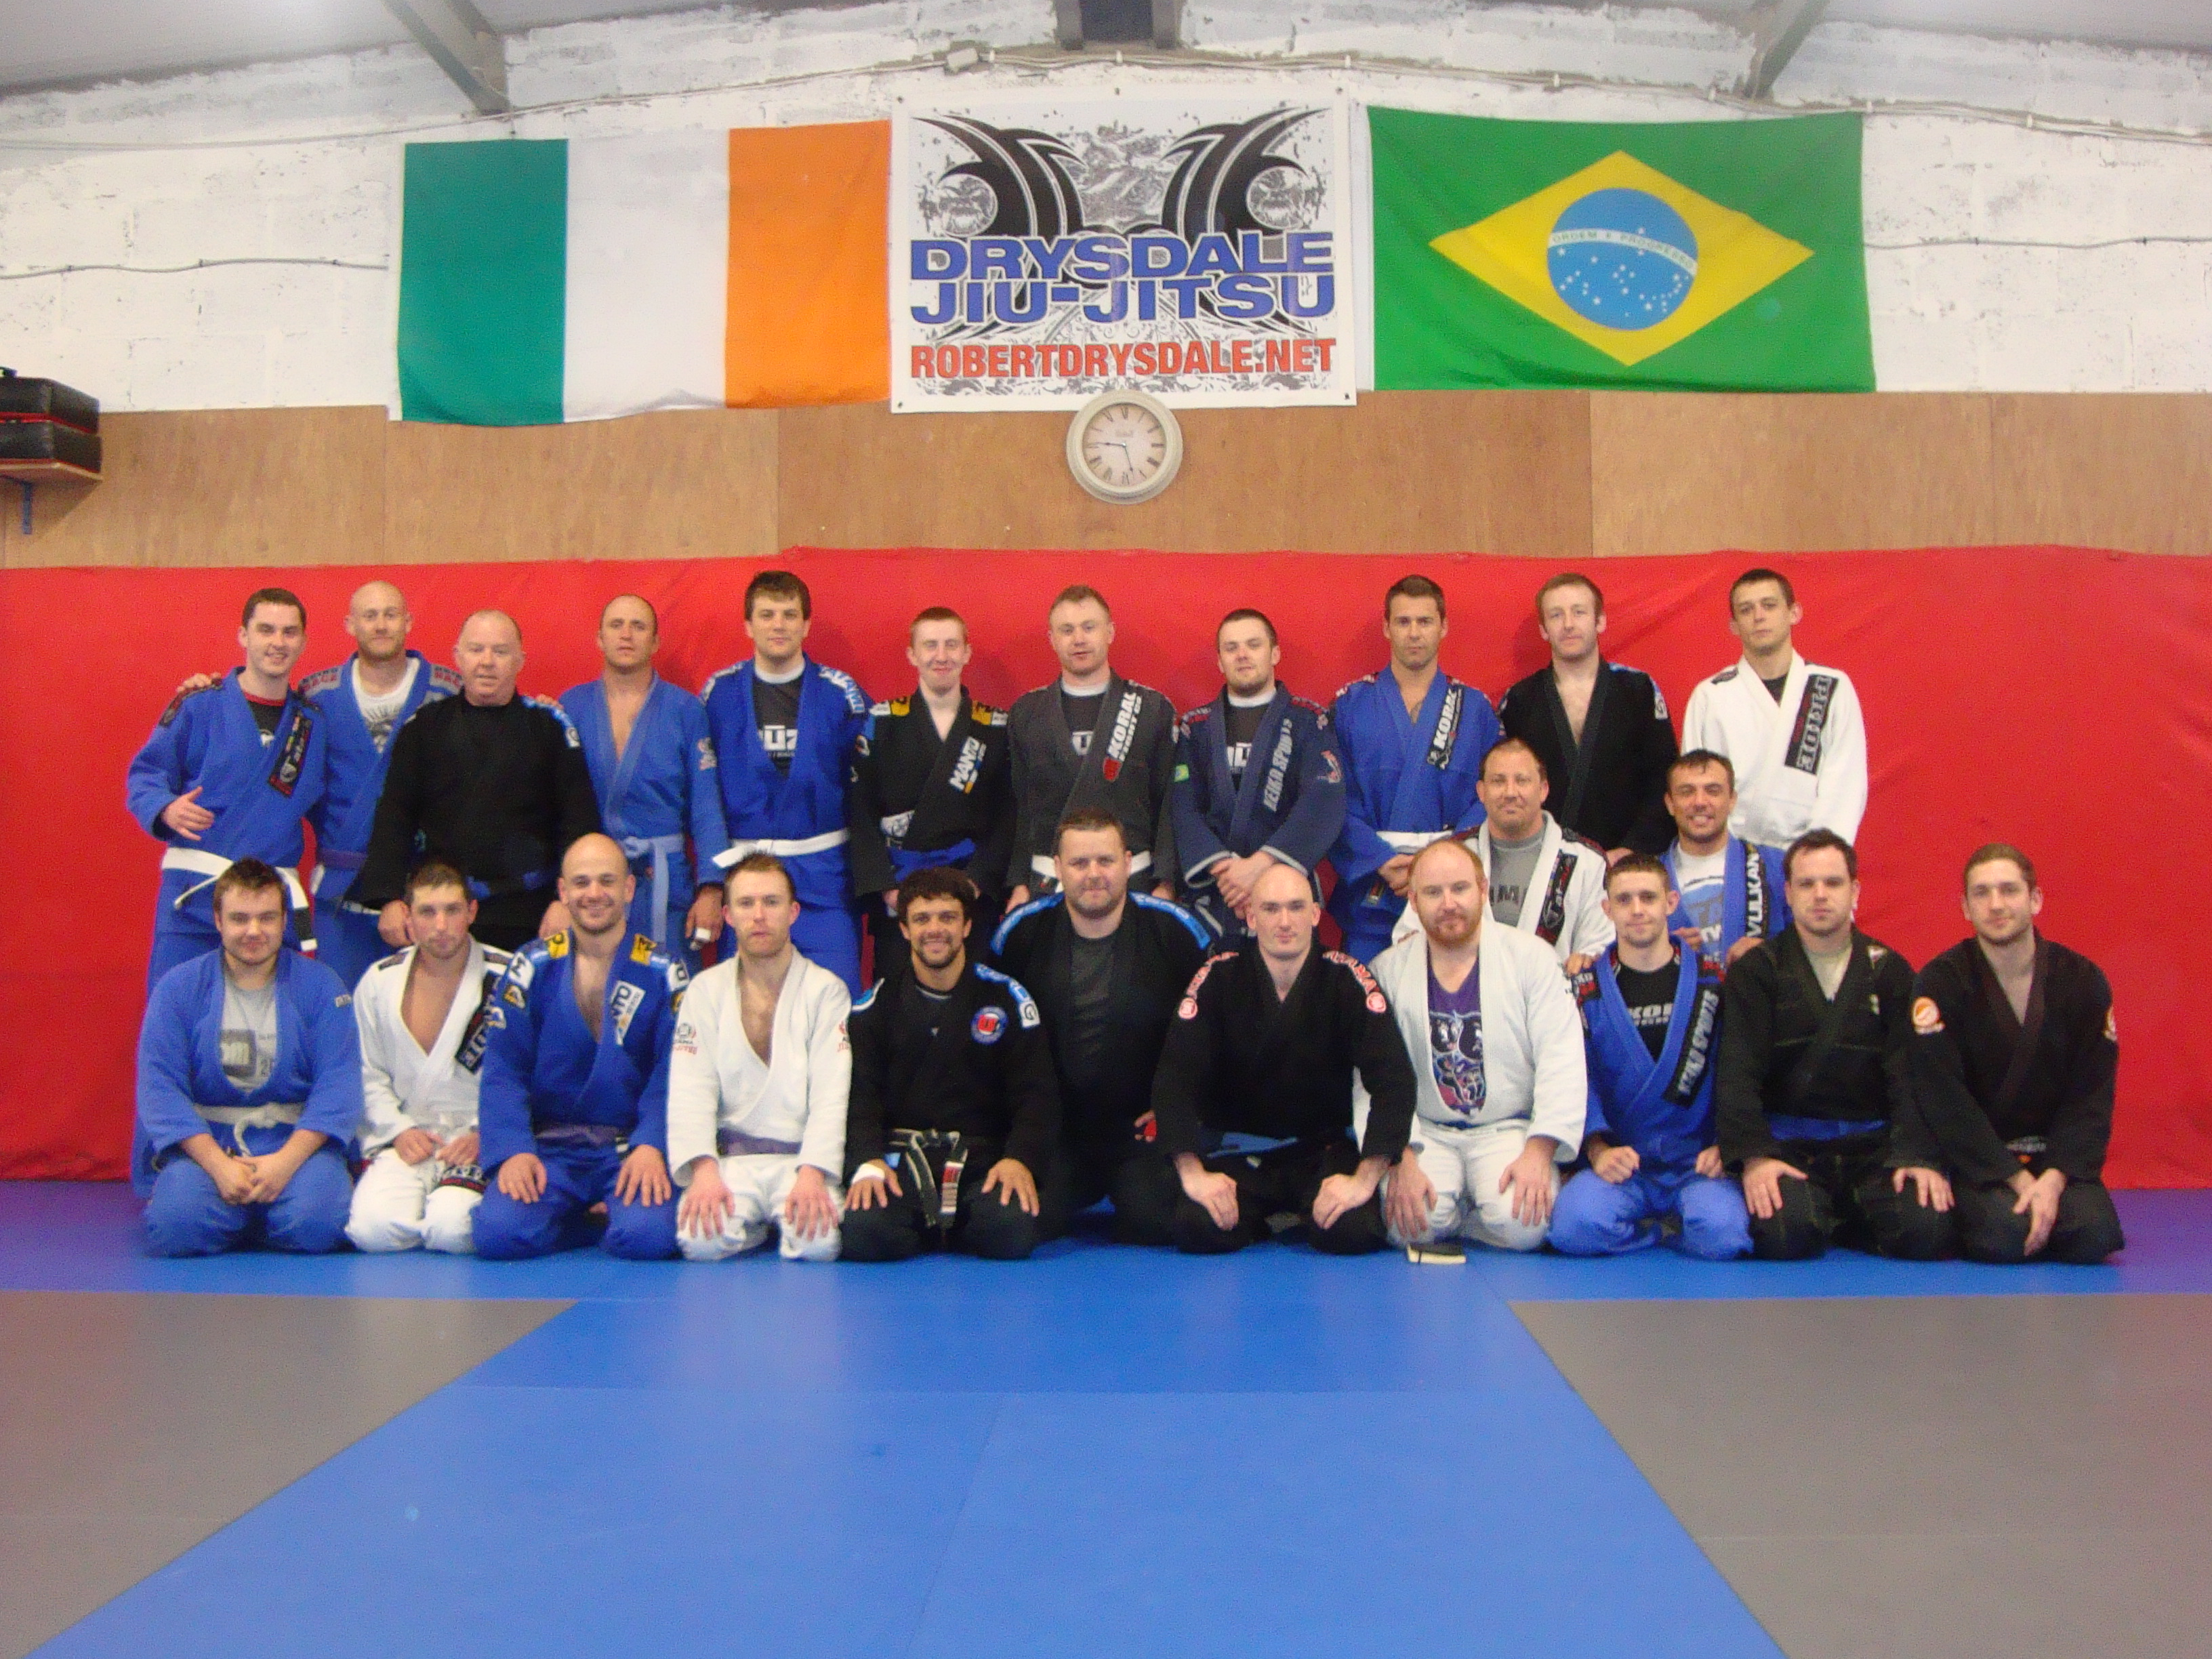 The seminar crew- Robson 5th from left in the front row, with coaches from the three supporting clubs alongside him